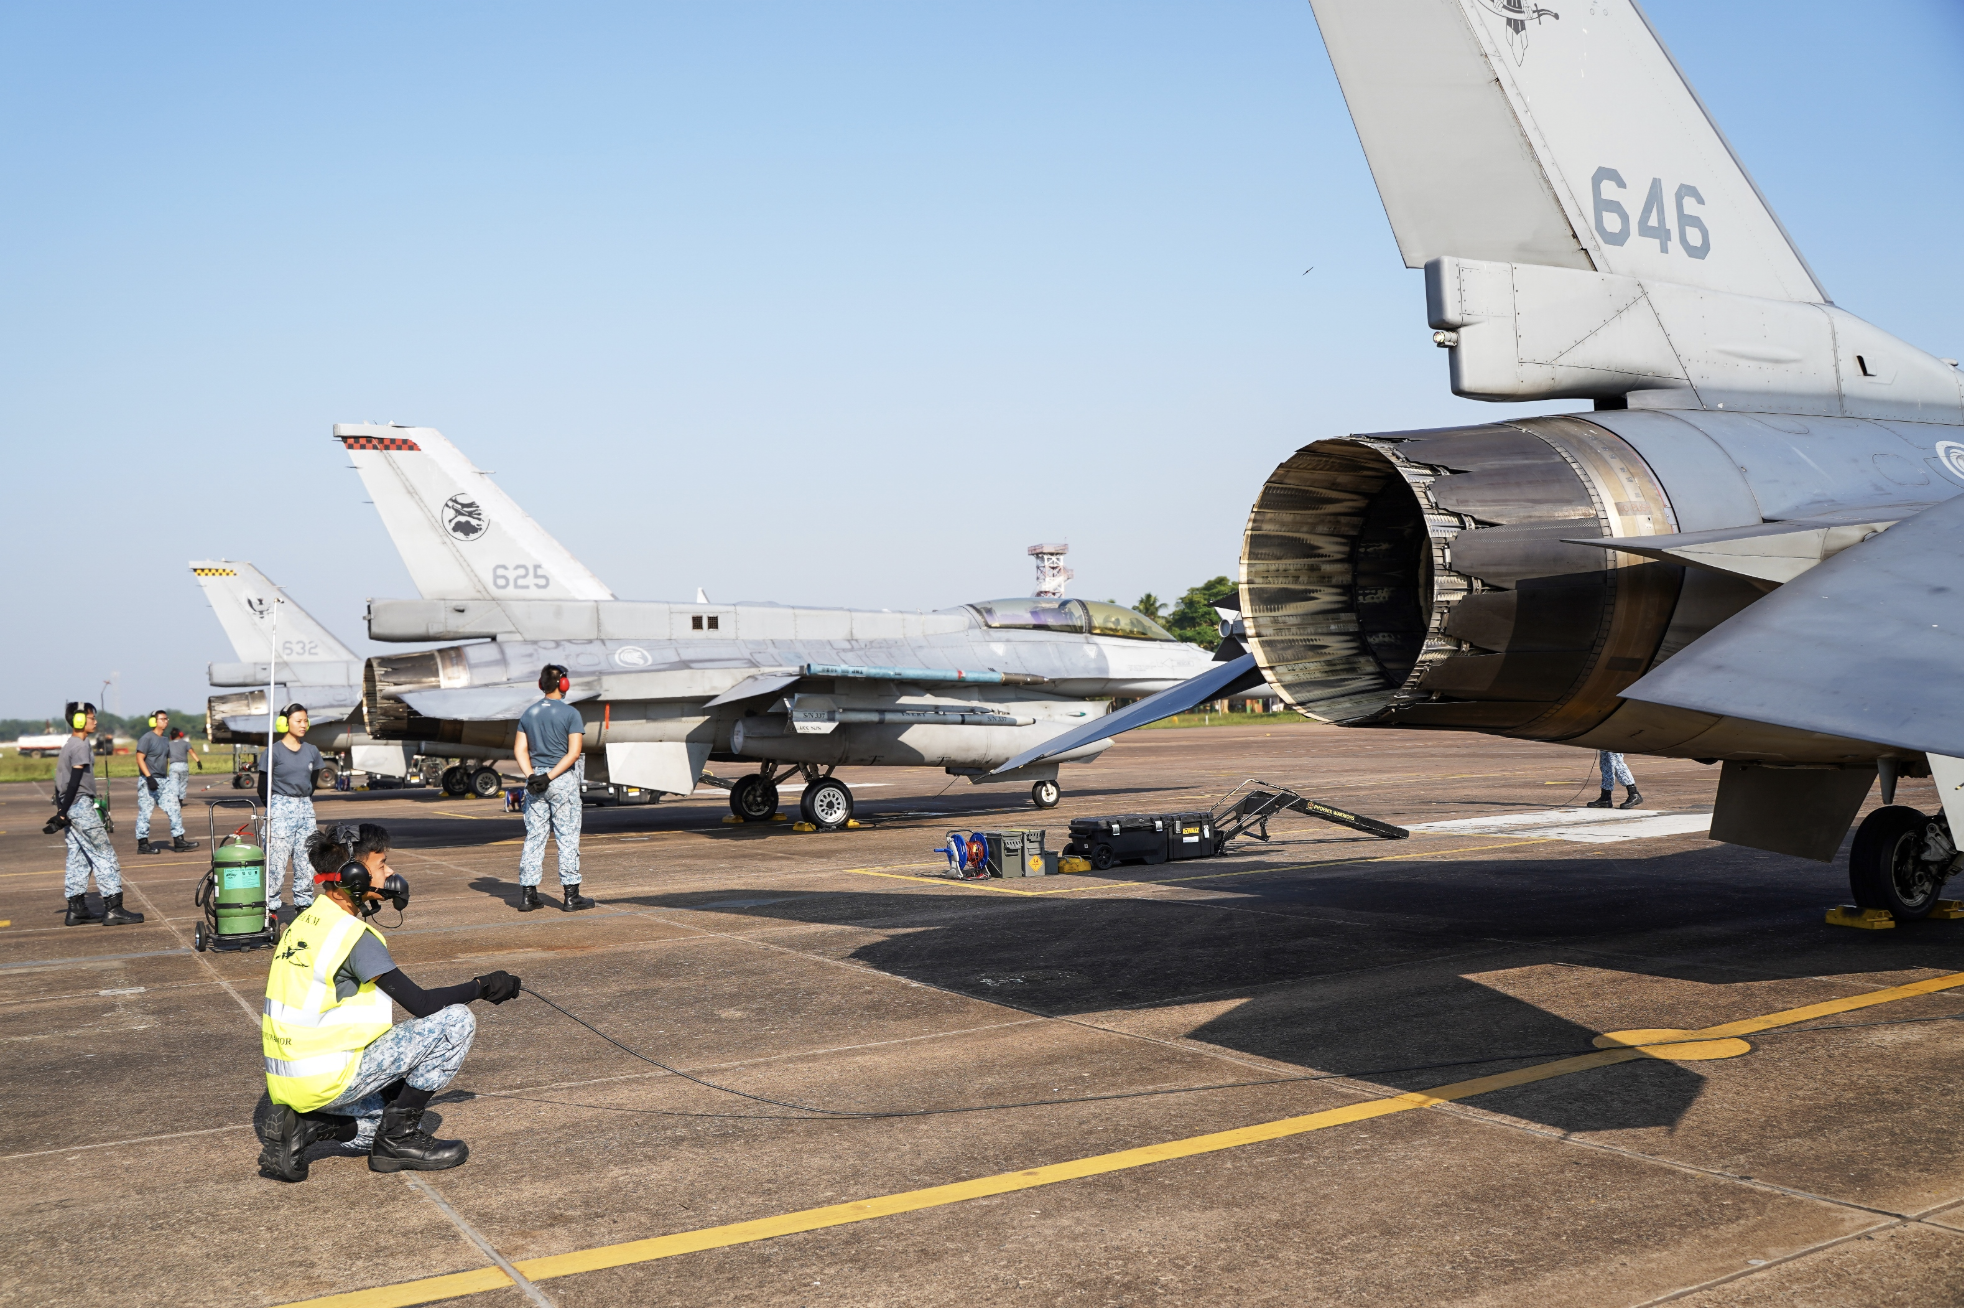 RSAF personnel preparing the F-16C/D for launch at the Kalaikunda Air Force Station as part of JMT 19. Photo courtesy: Mindef